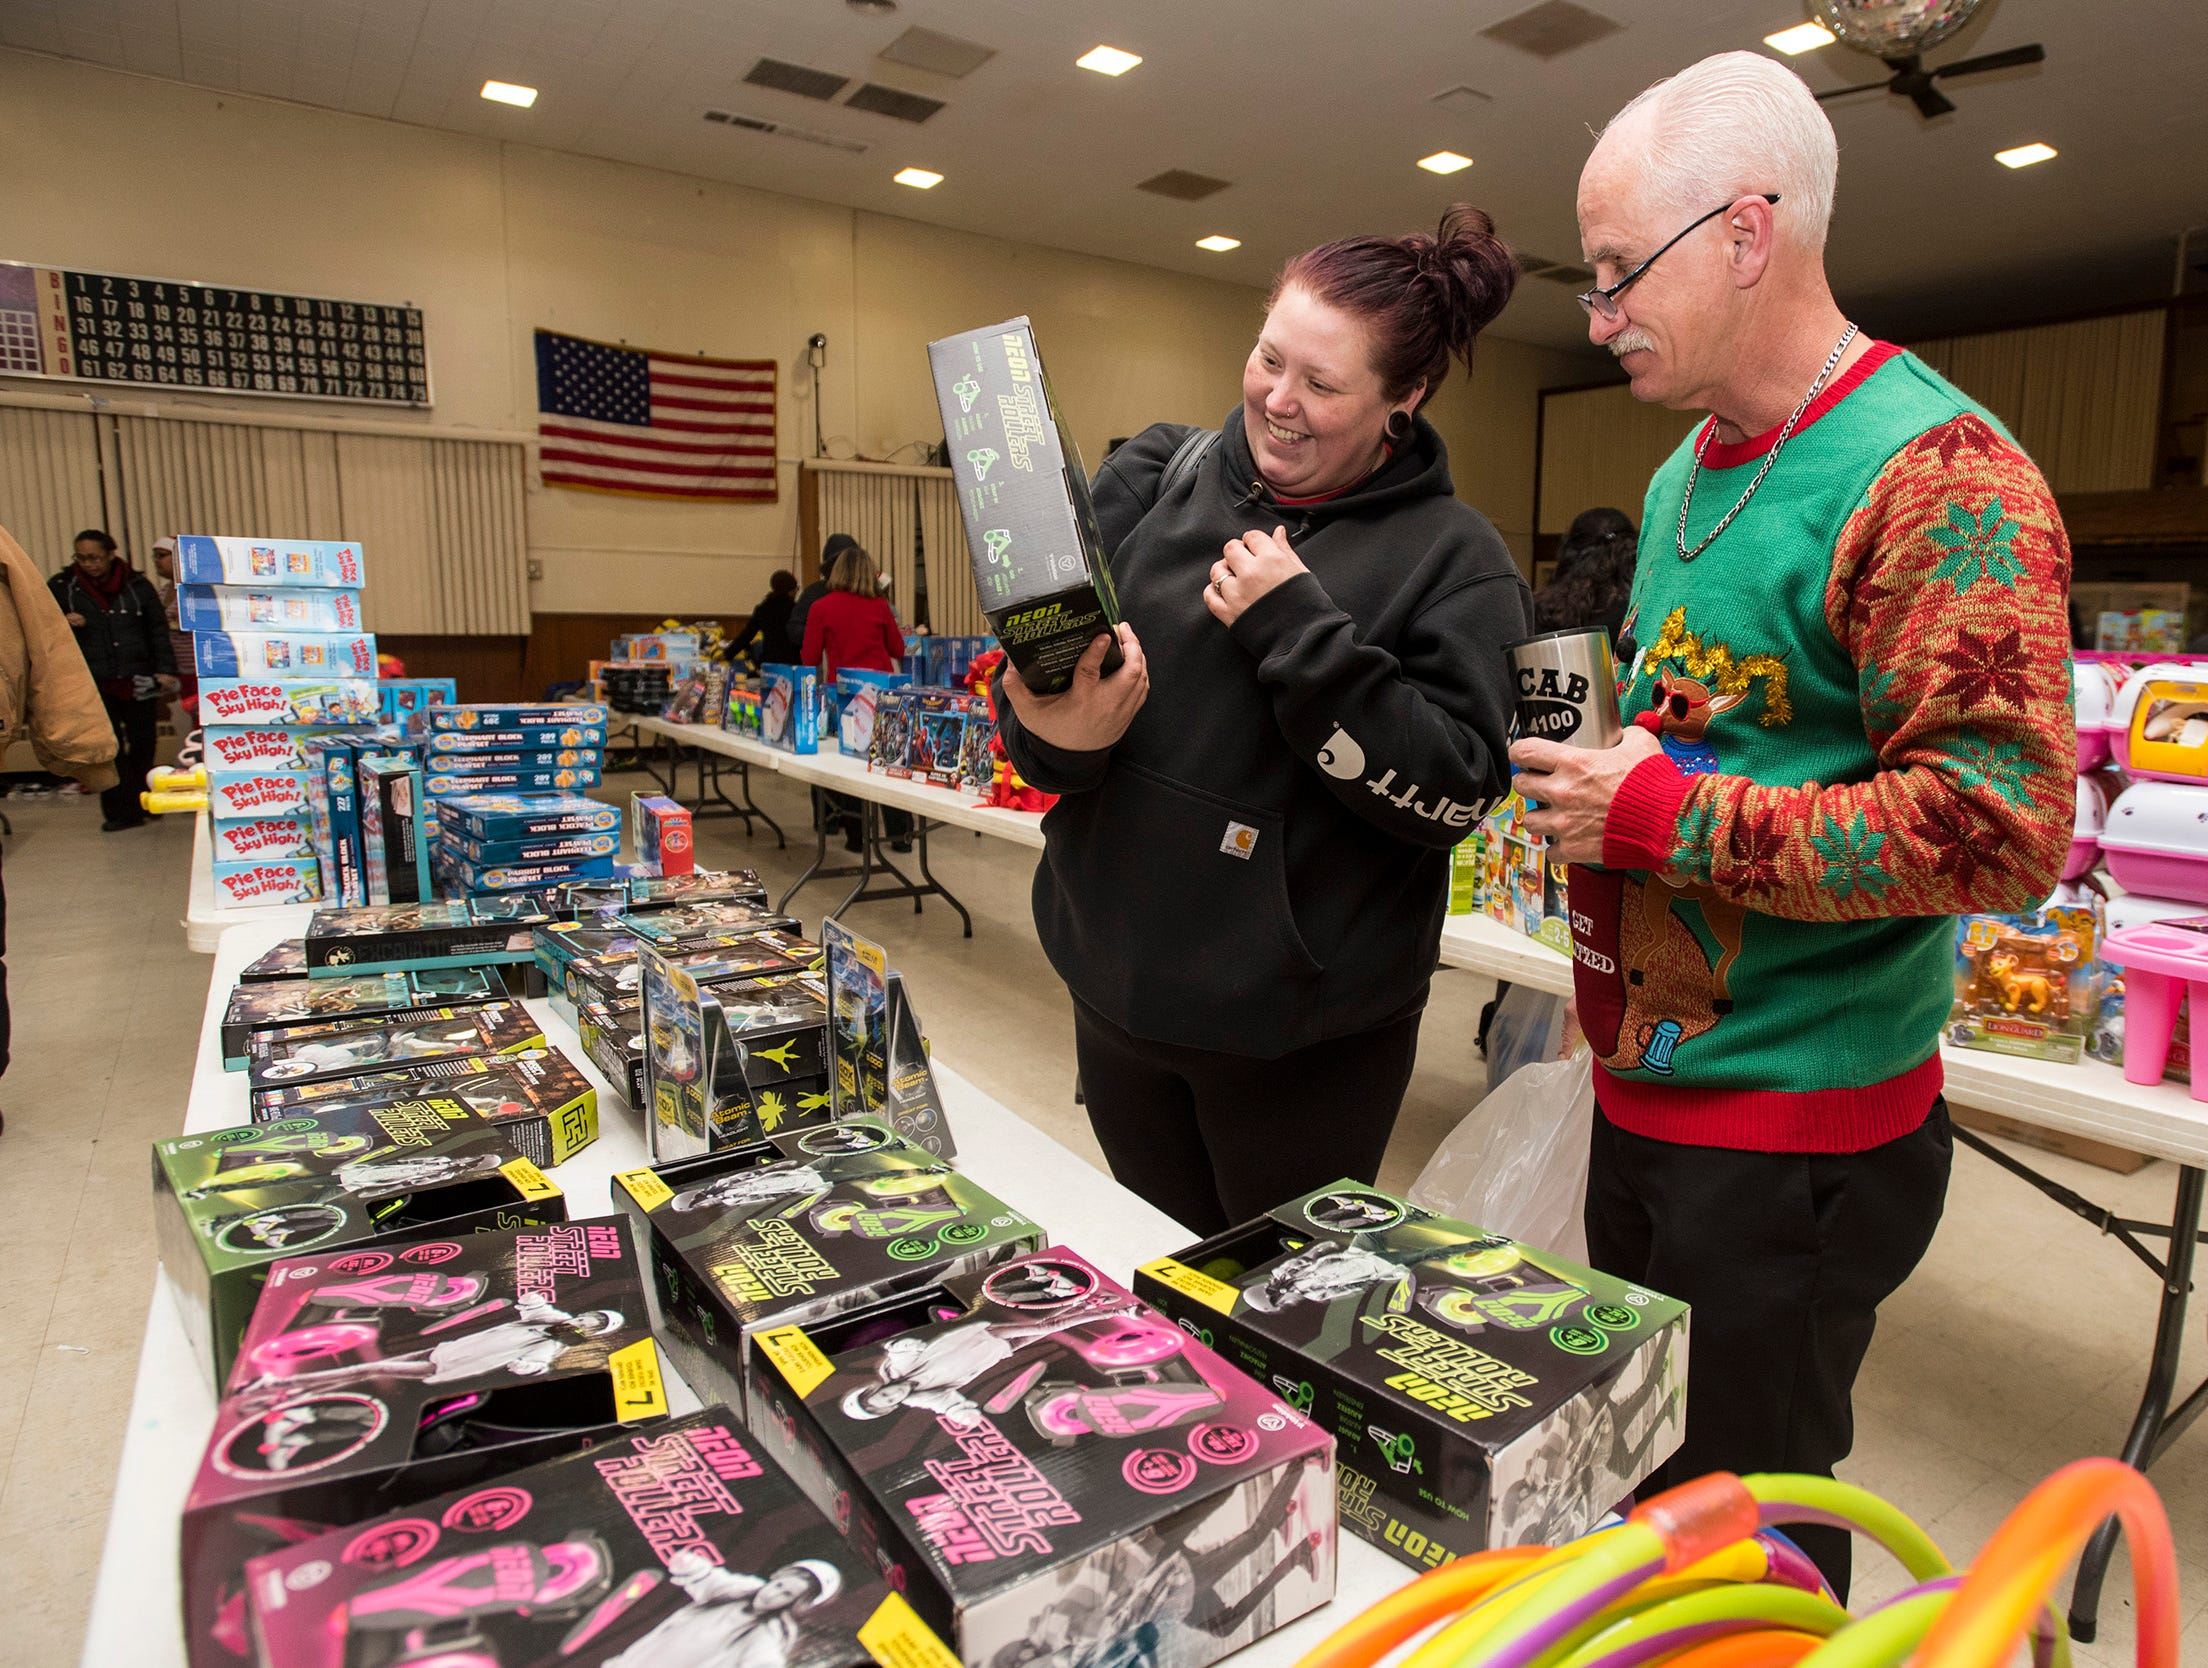 Volunteer Dennis Cooper, right, helps Alicia Patterson find toys for her 10-year-old son and 2-year-ld daughter Wednesday, Dec. 12, 2018 during the annual toy giveaway at the Charles Hammond American Legion Post in Port Huron.